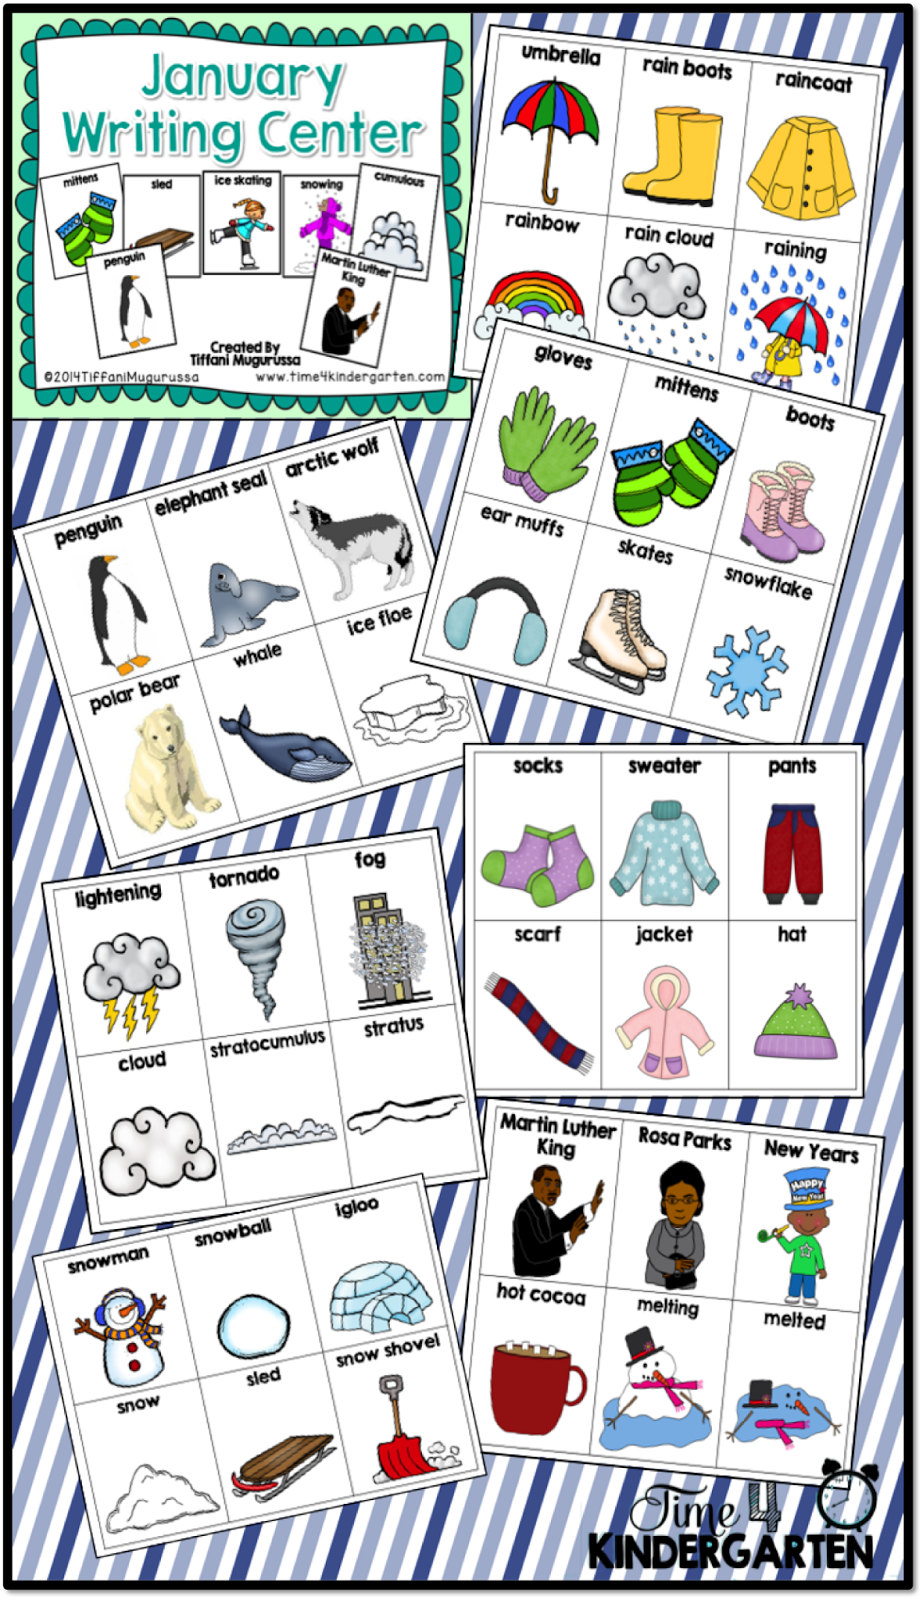 writing center, kindergarten writing, word wall cards, January word wall